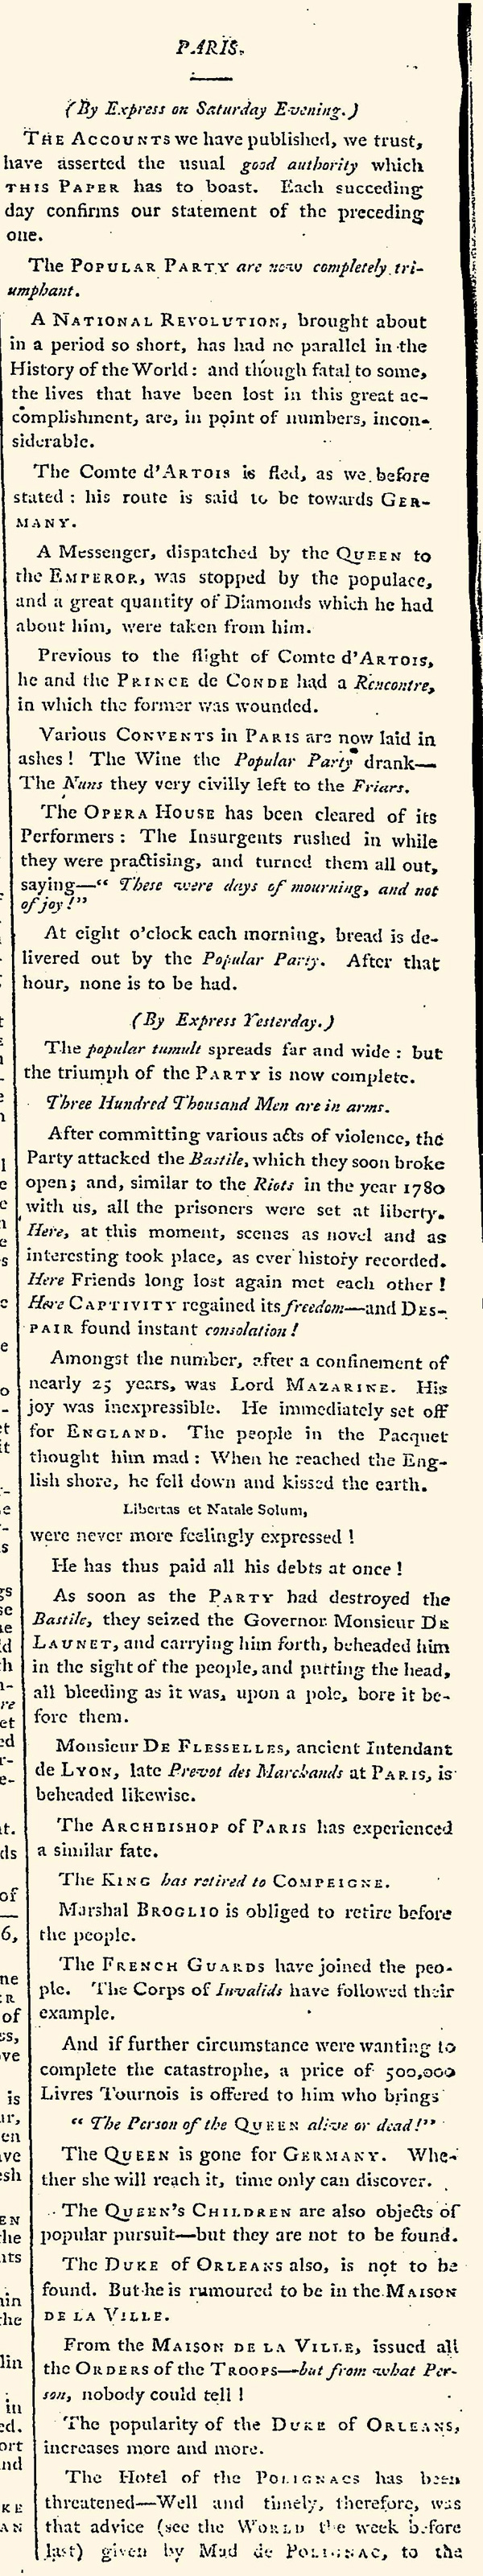 Newspaper account of the outbreak of the French Revolution